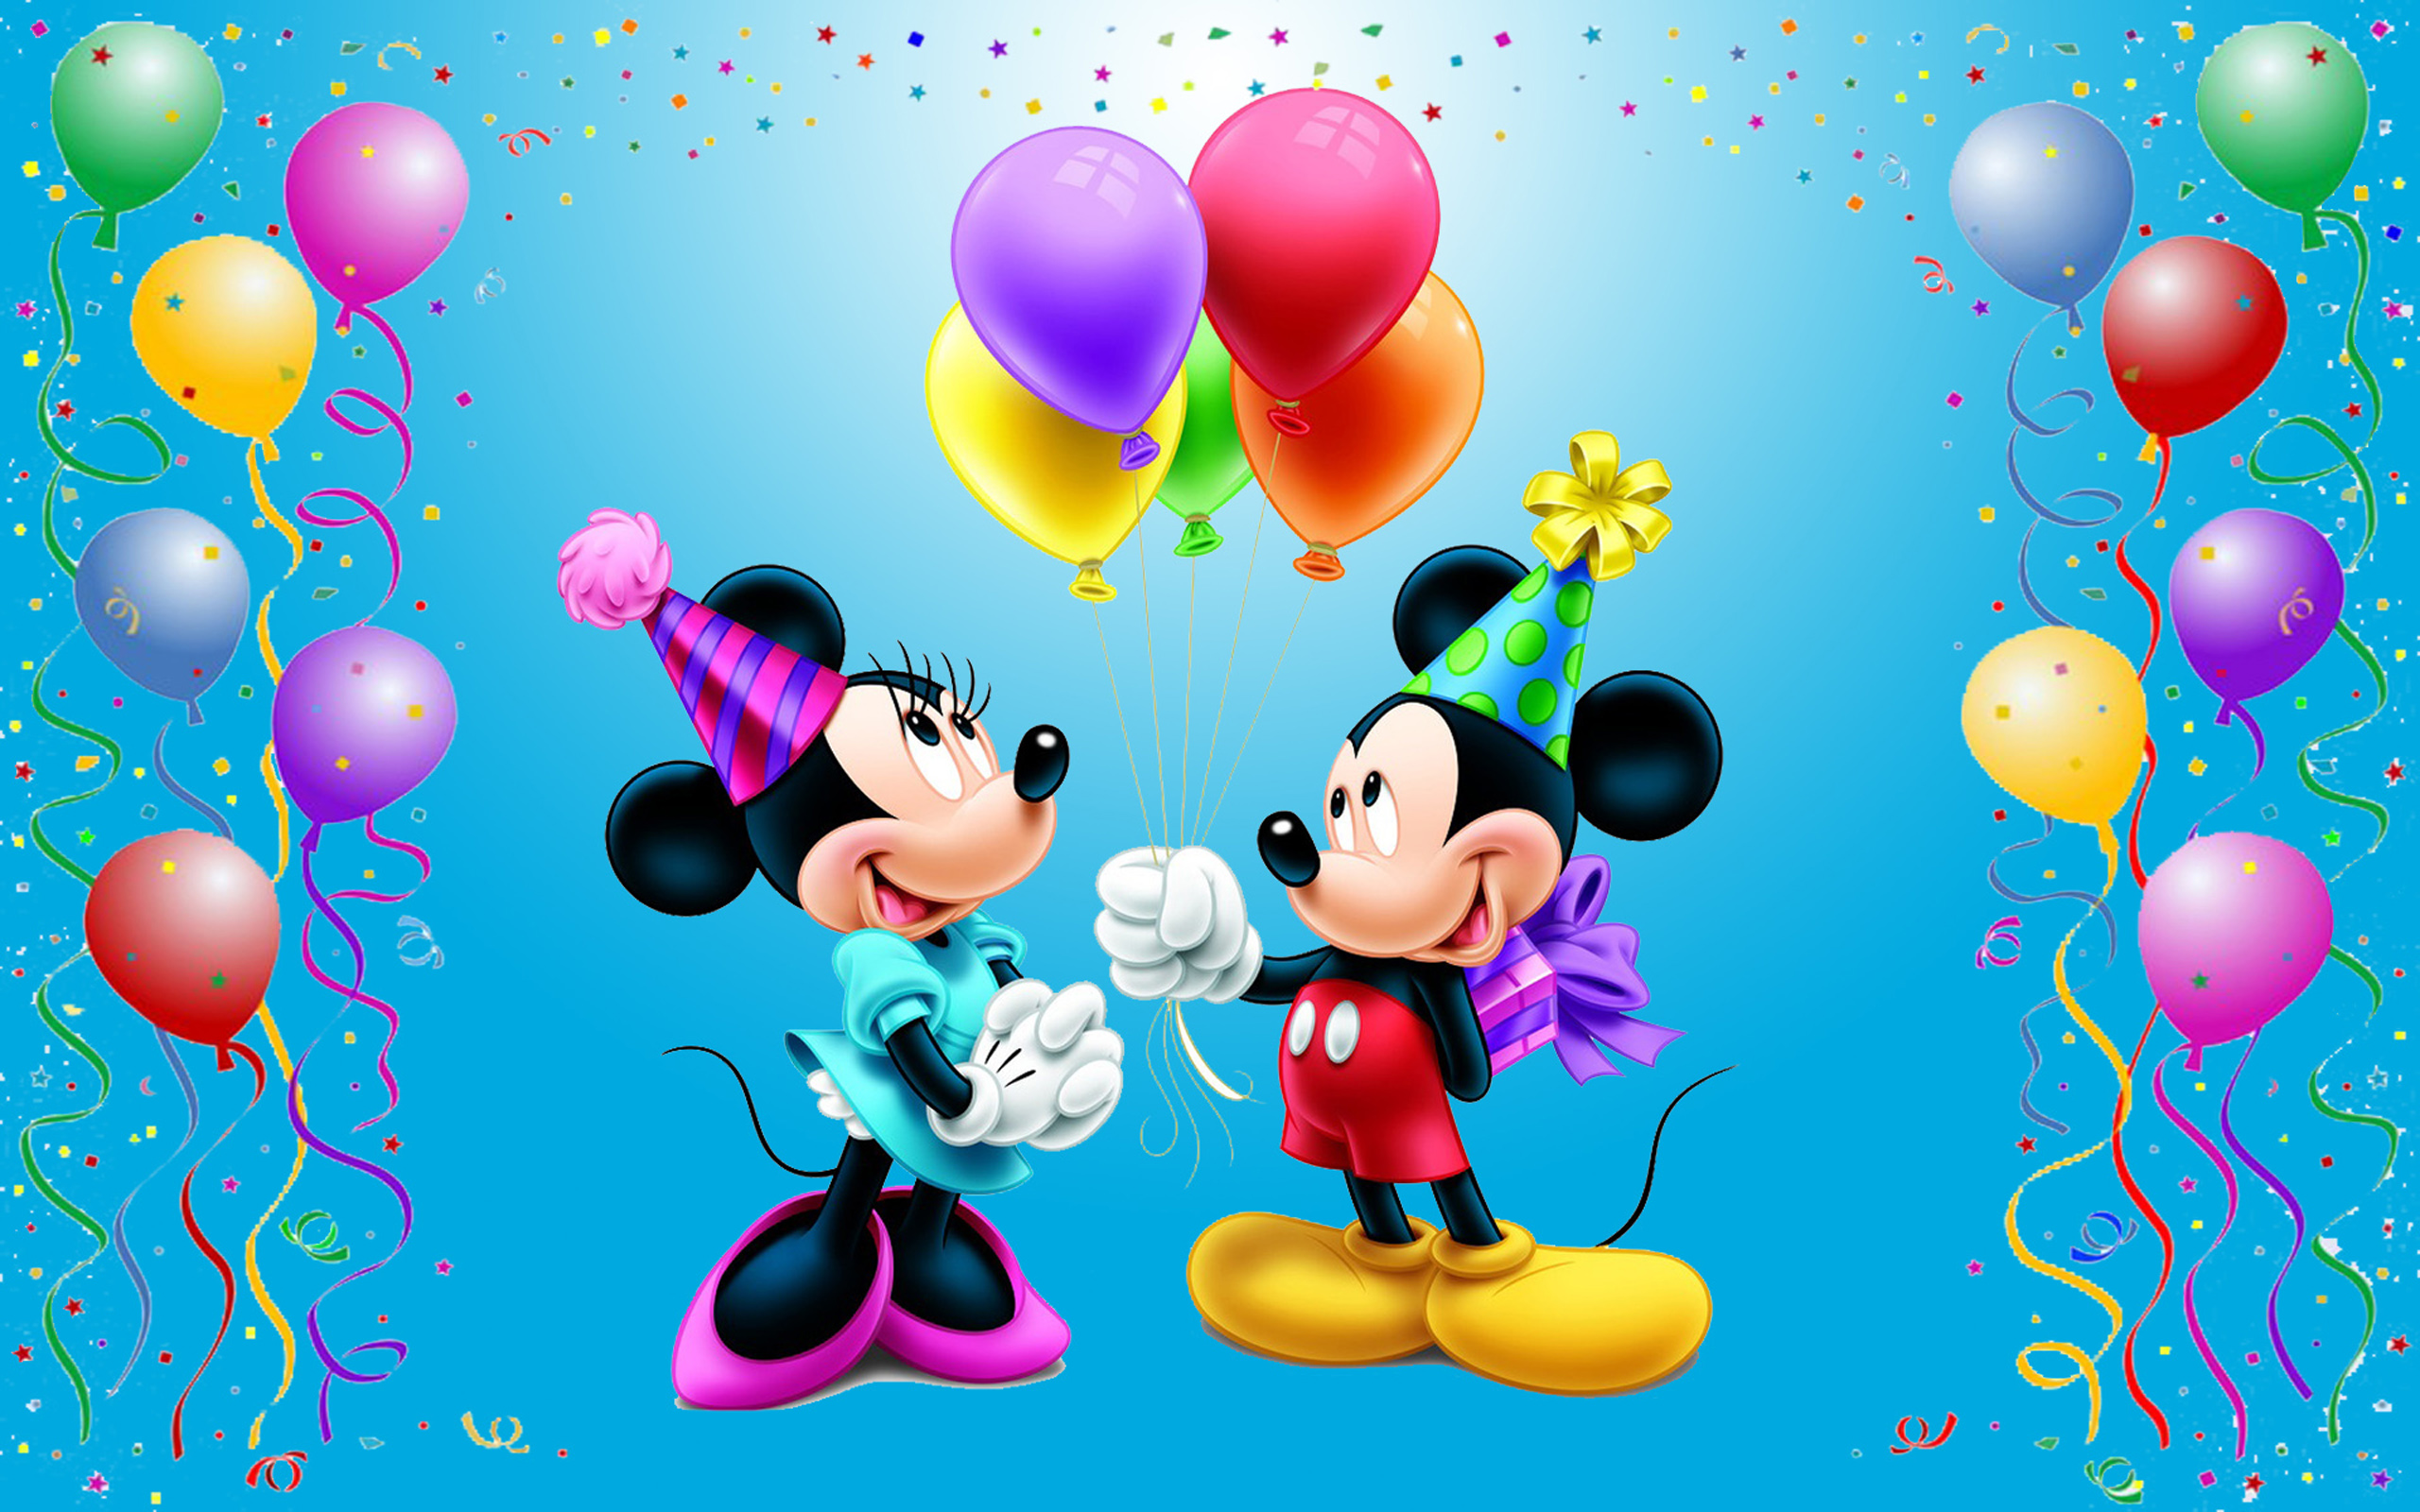 Cute Winnie The Pooh Iphone Wallpapers Mickey Mouse Happy Birthday Minnie Celebration Balloons